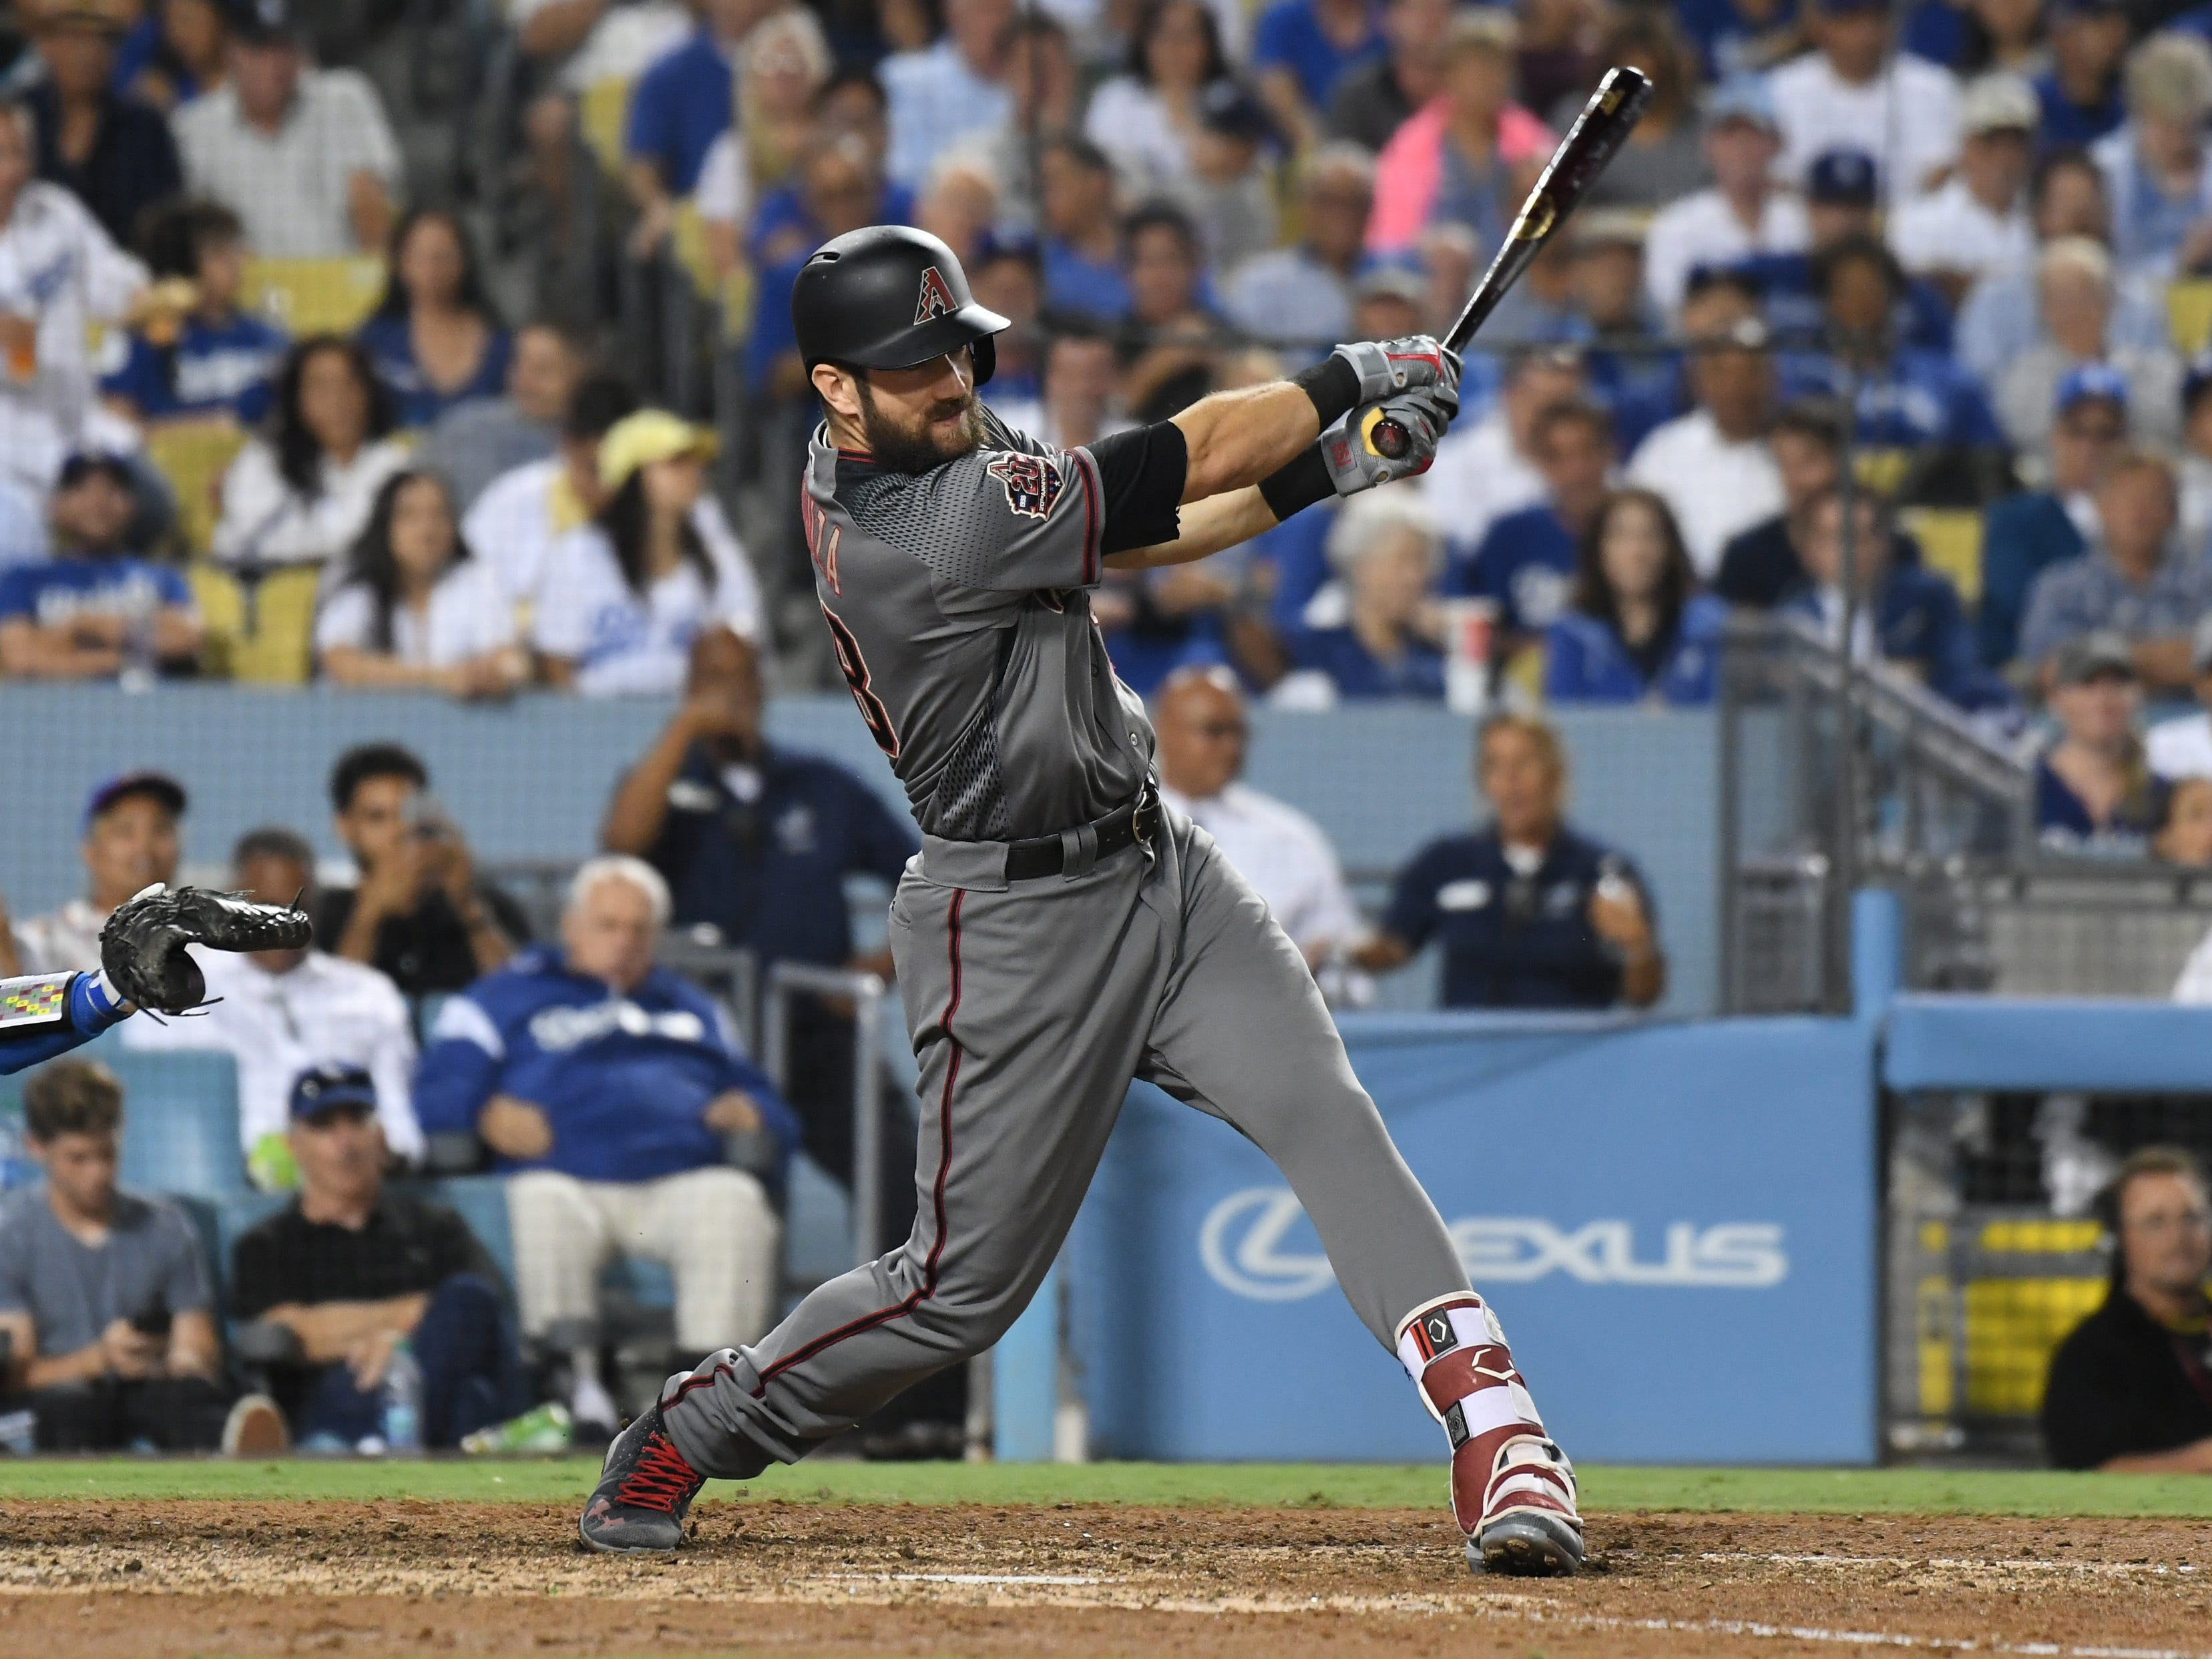 Aug 30, 2018; Los Angeles, CA, USA; Arizona Diamondbacks right fielder Steven Souza Jr. (28) hits a double against the Los Angeles Dodgers in the seventh inning at Dodger Stadium. Mandatory Credit: Richard Mackson-USA TODAY Sports